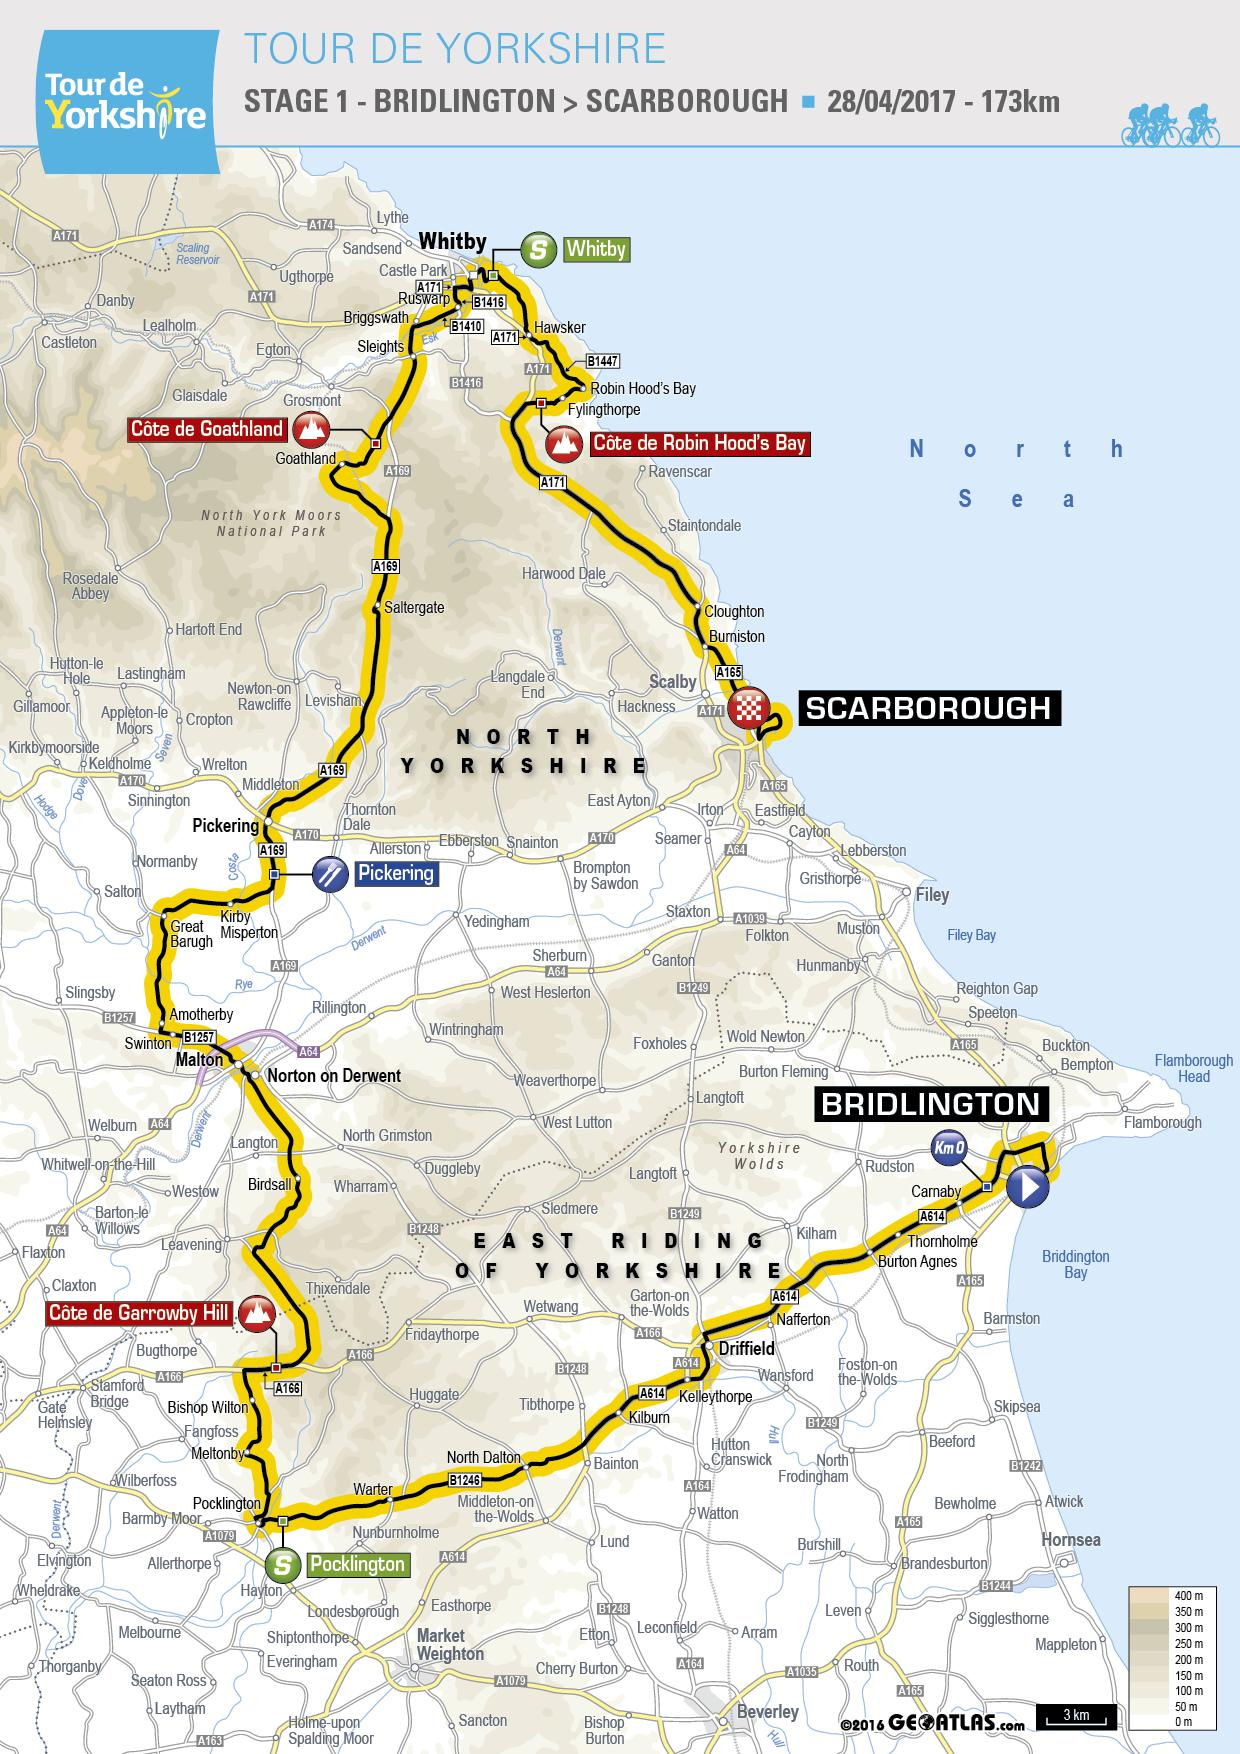 Stage 1 of the Tour de Yorkshire 2017